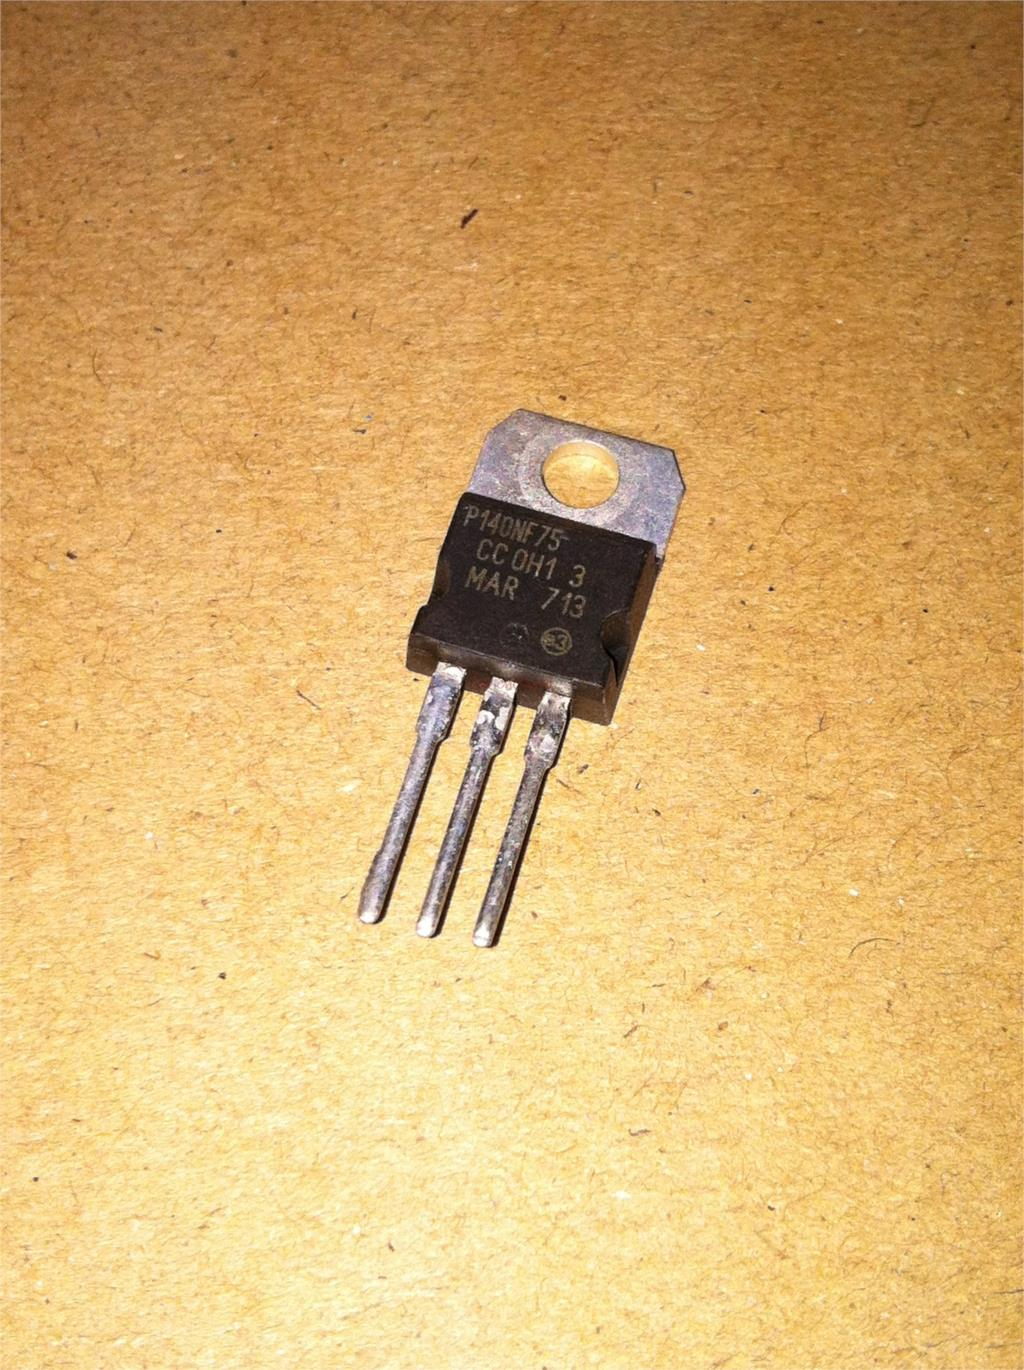 10pcs/lot STP140NF75 P140NF75 TO220 75V 120A New Original In Stock